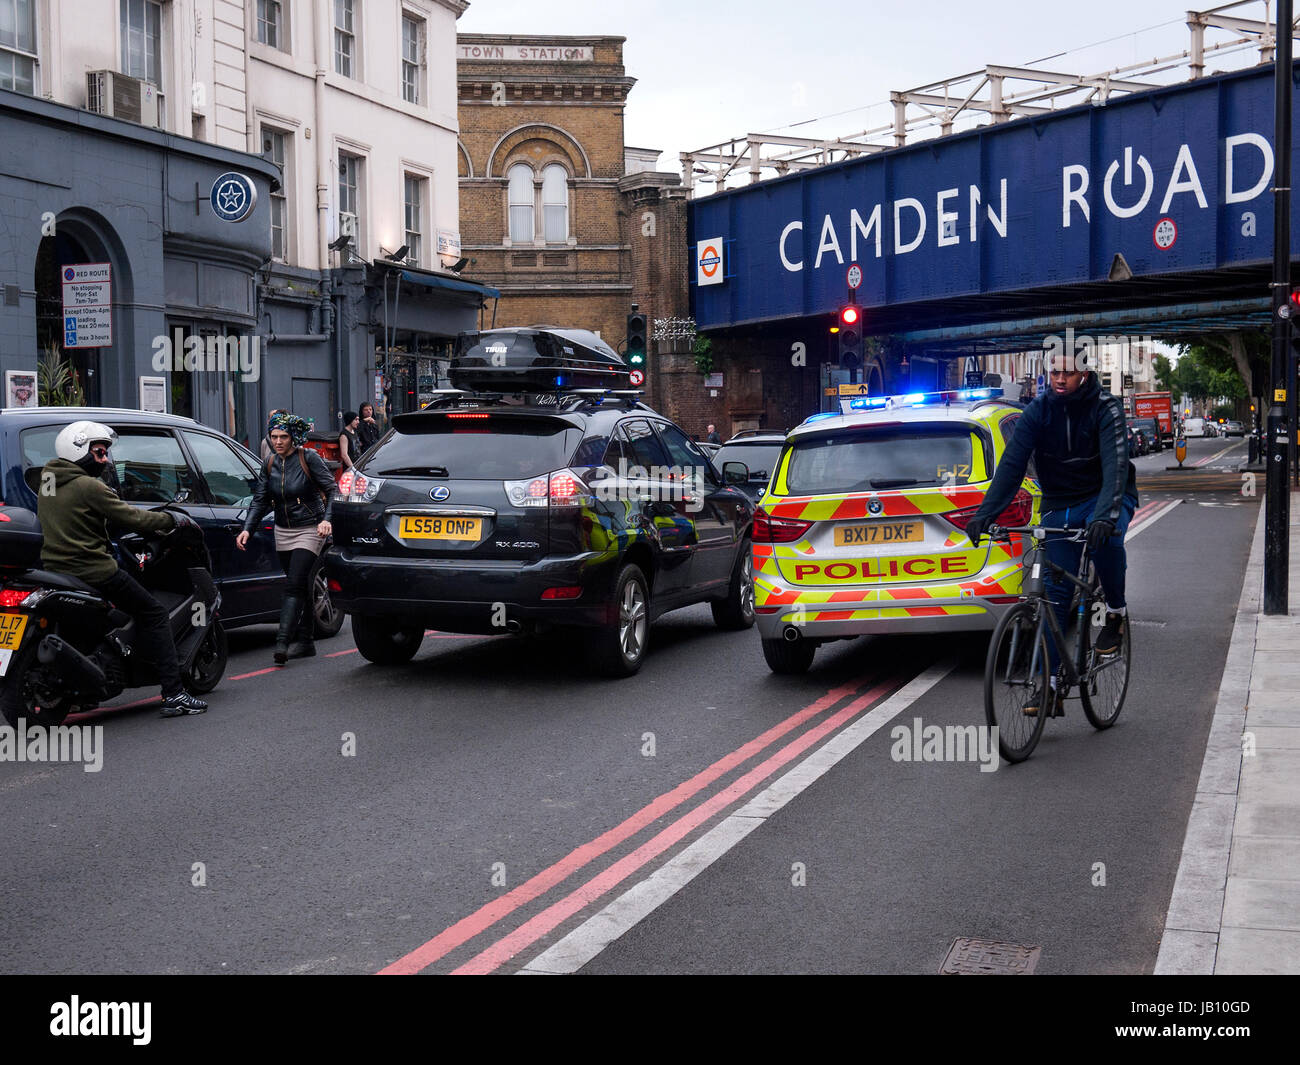 Police car has to drive on a separated cycle lane on an emergency call Royal College Street Camden Town London UK - Stock Image